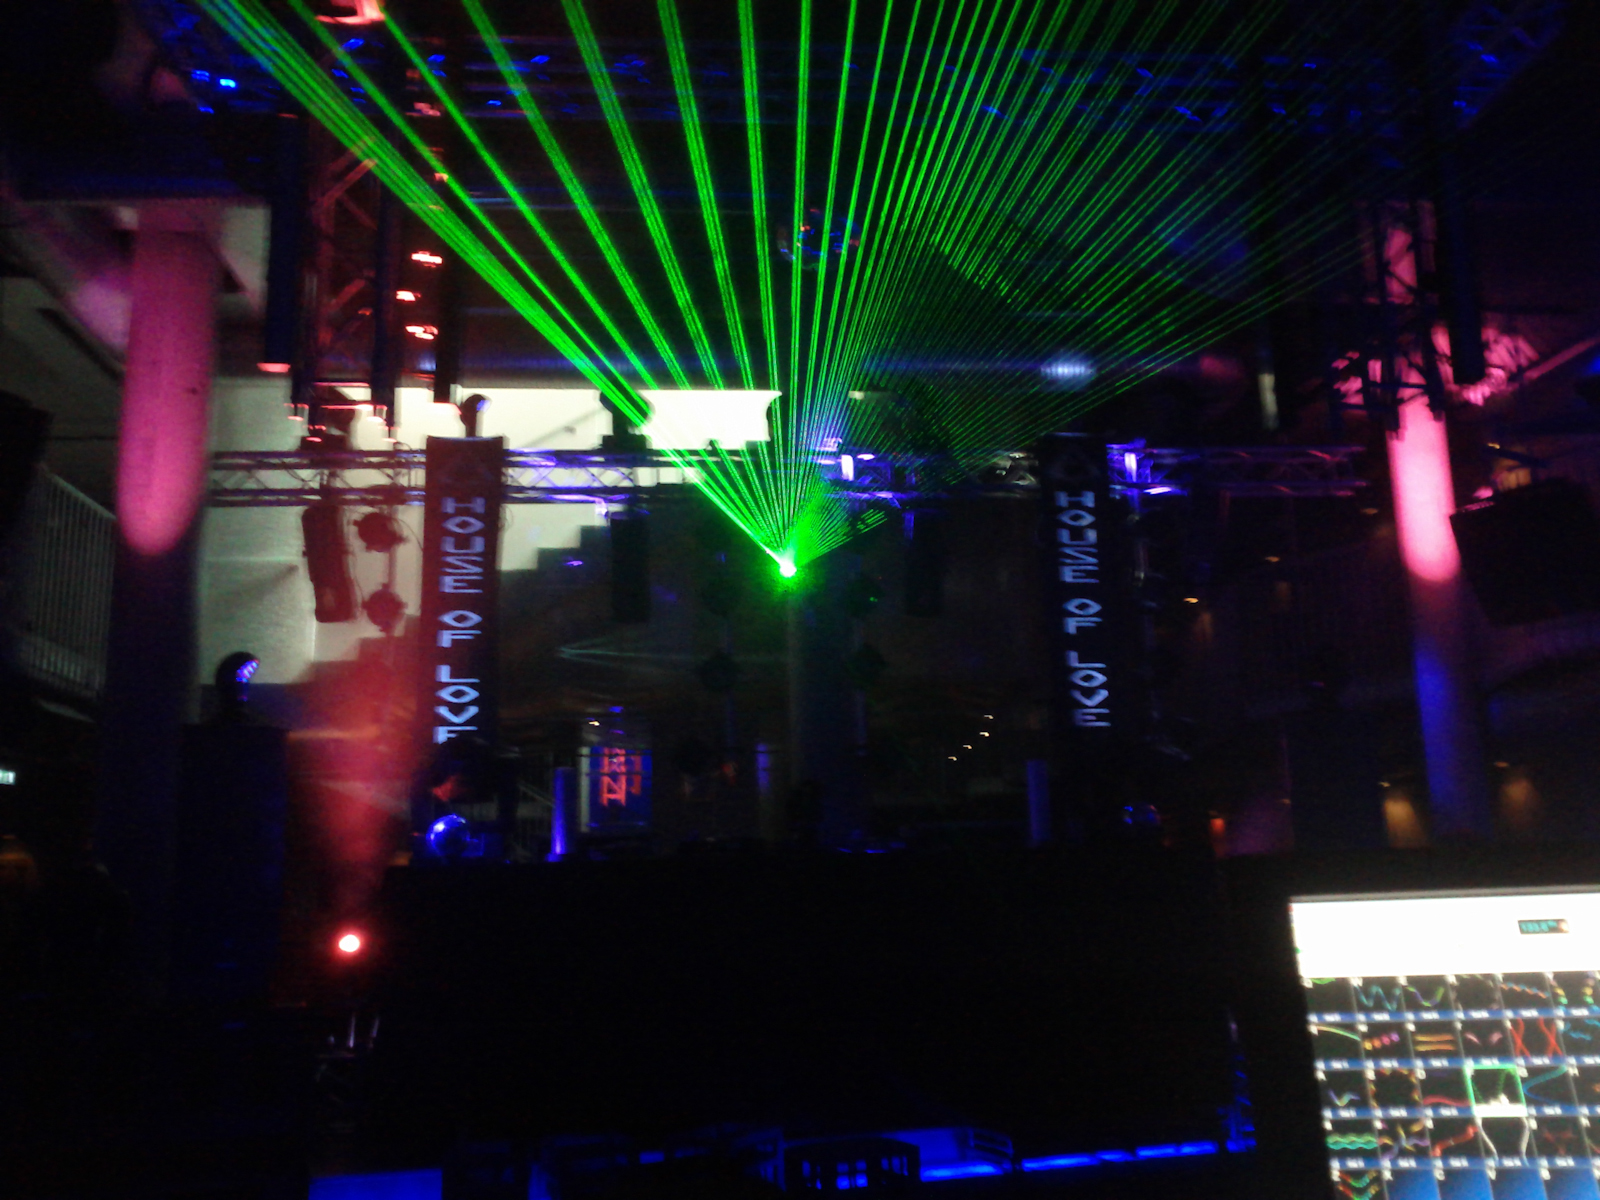 One of the lasers work =)